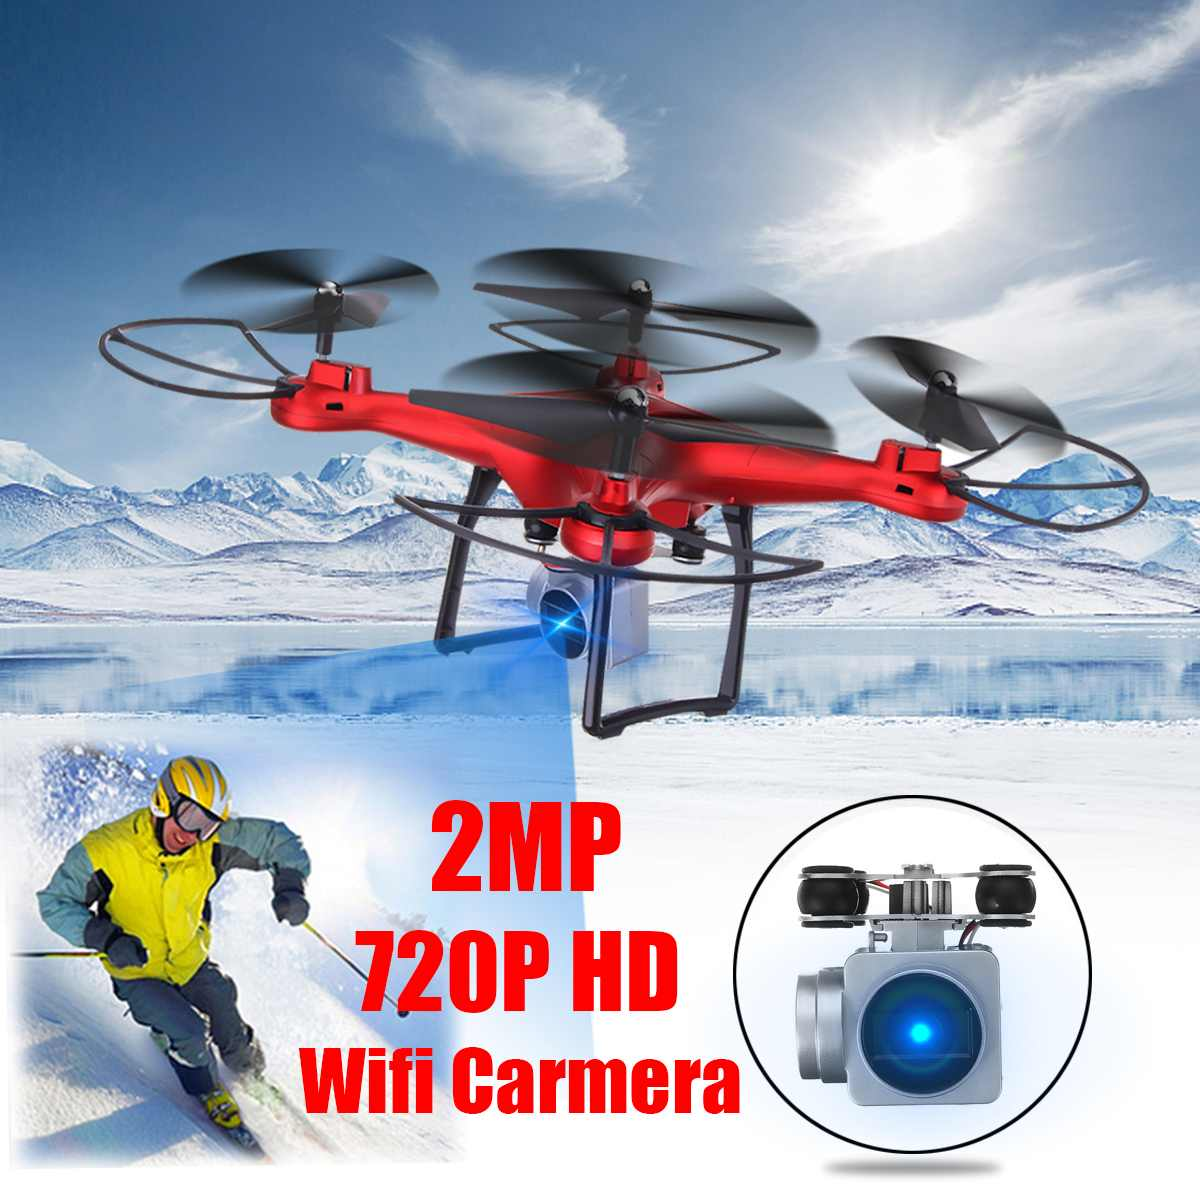 SMAO S10 HD Camera FPV WIFI RC Drone Quadcopter UAV Remote Control Helicopter Altitude Hold  Anti-Interference Wireless For KidsSMAO S10 HD Camera FPV WIFI RC Drone Quadcopter UAV Remote Control Helicopter Altitude Hold  Anti-Interference Wireless For Kids